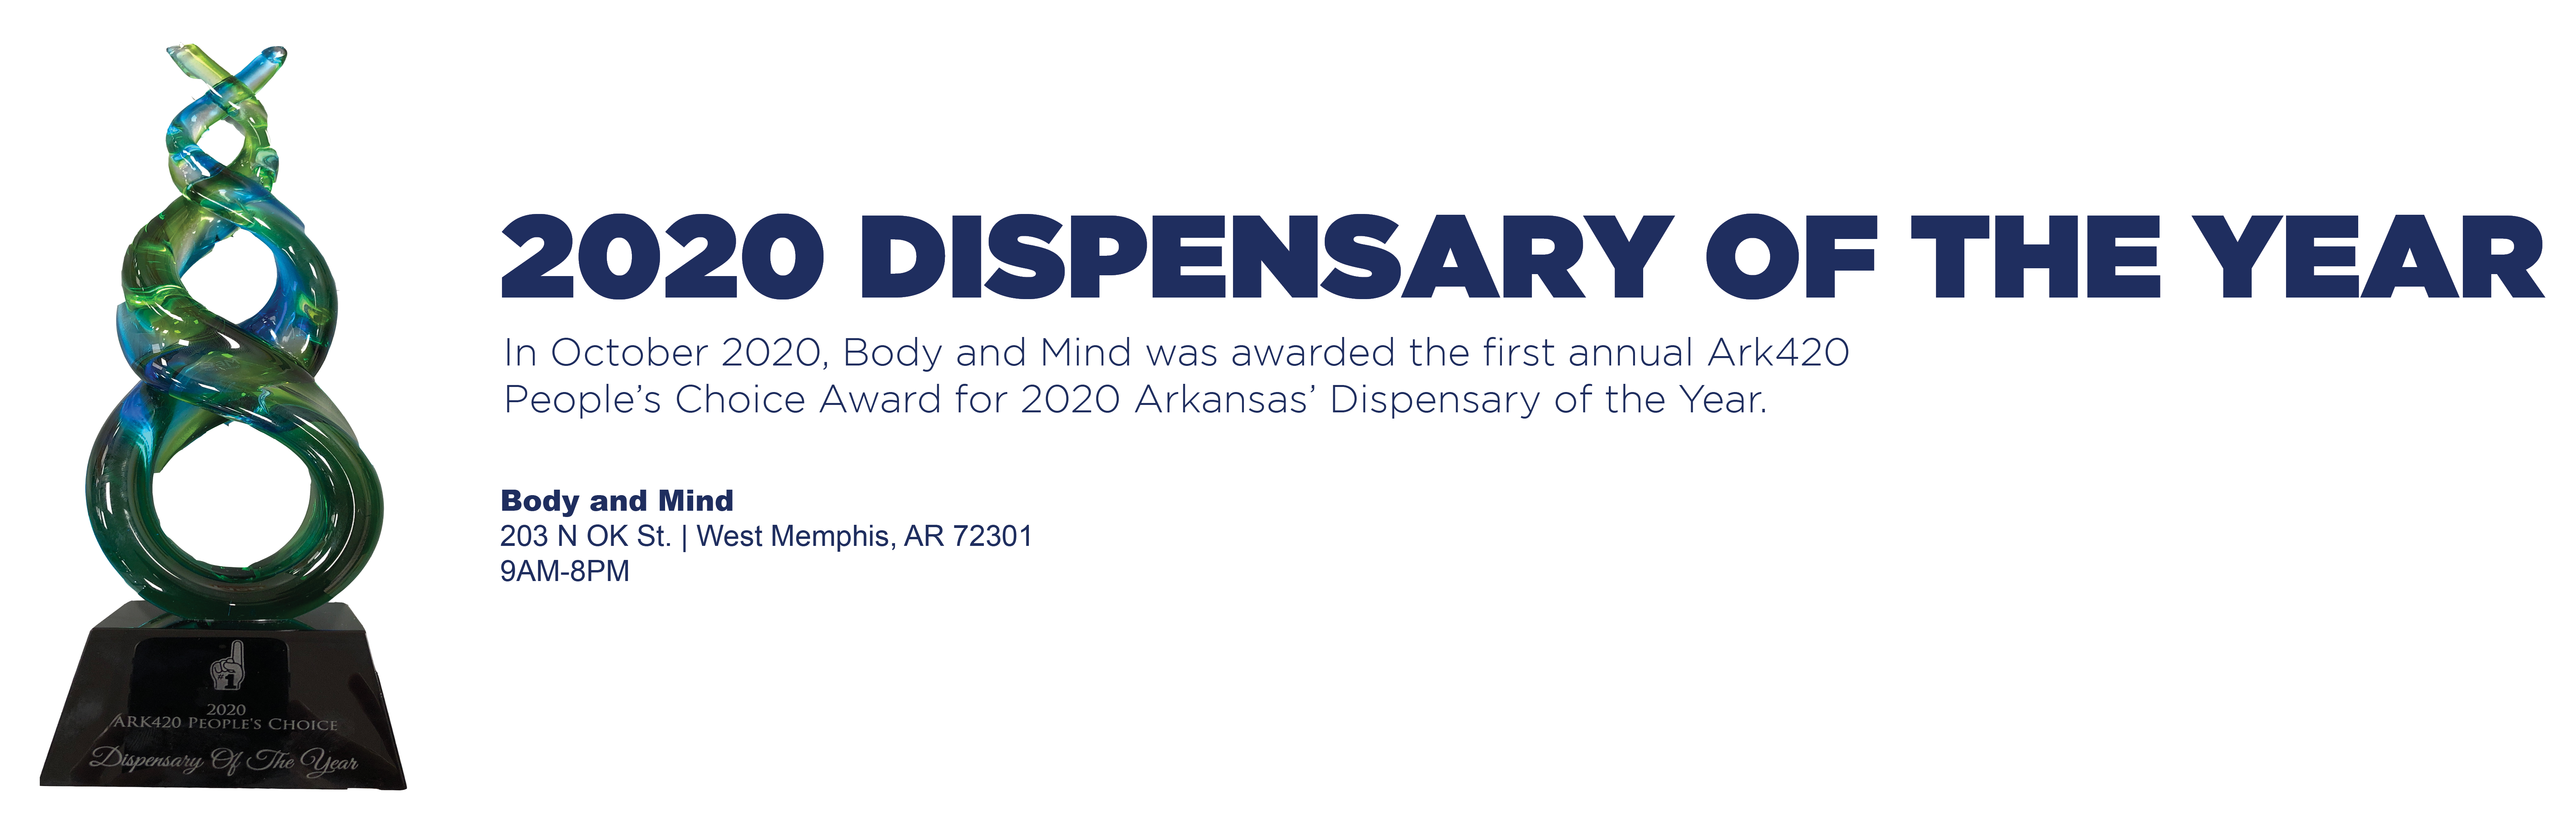 West Memphis Arkansas Dispensary, West Memphis Dispensary